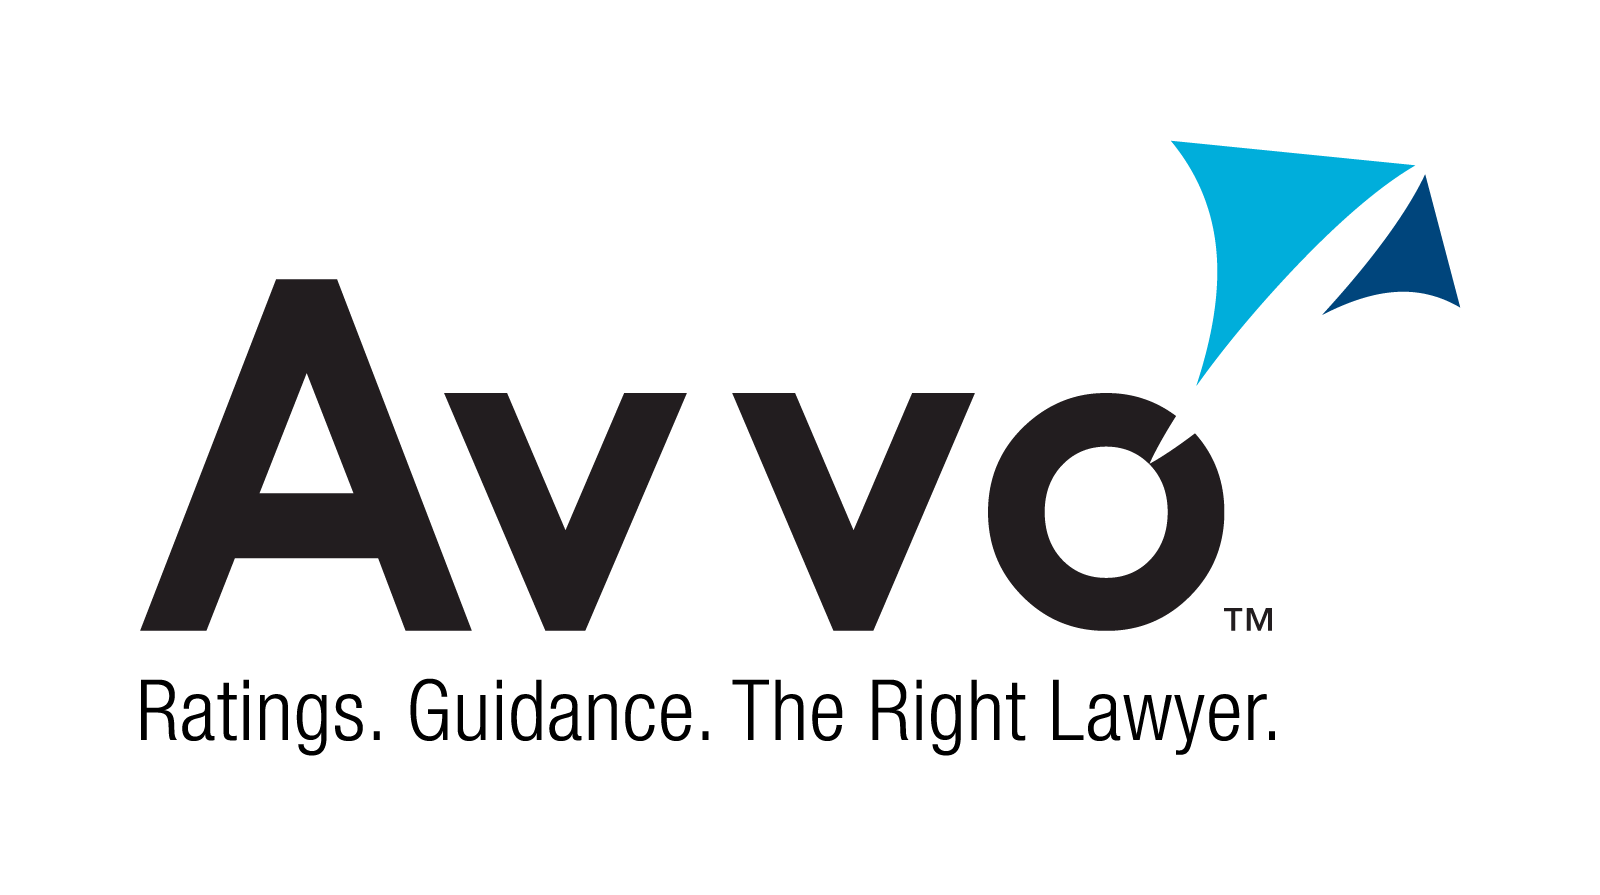 Please Read Our Reviews on AVVO.com